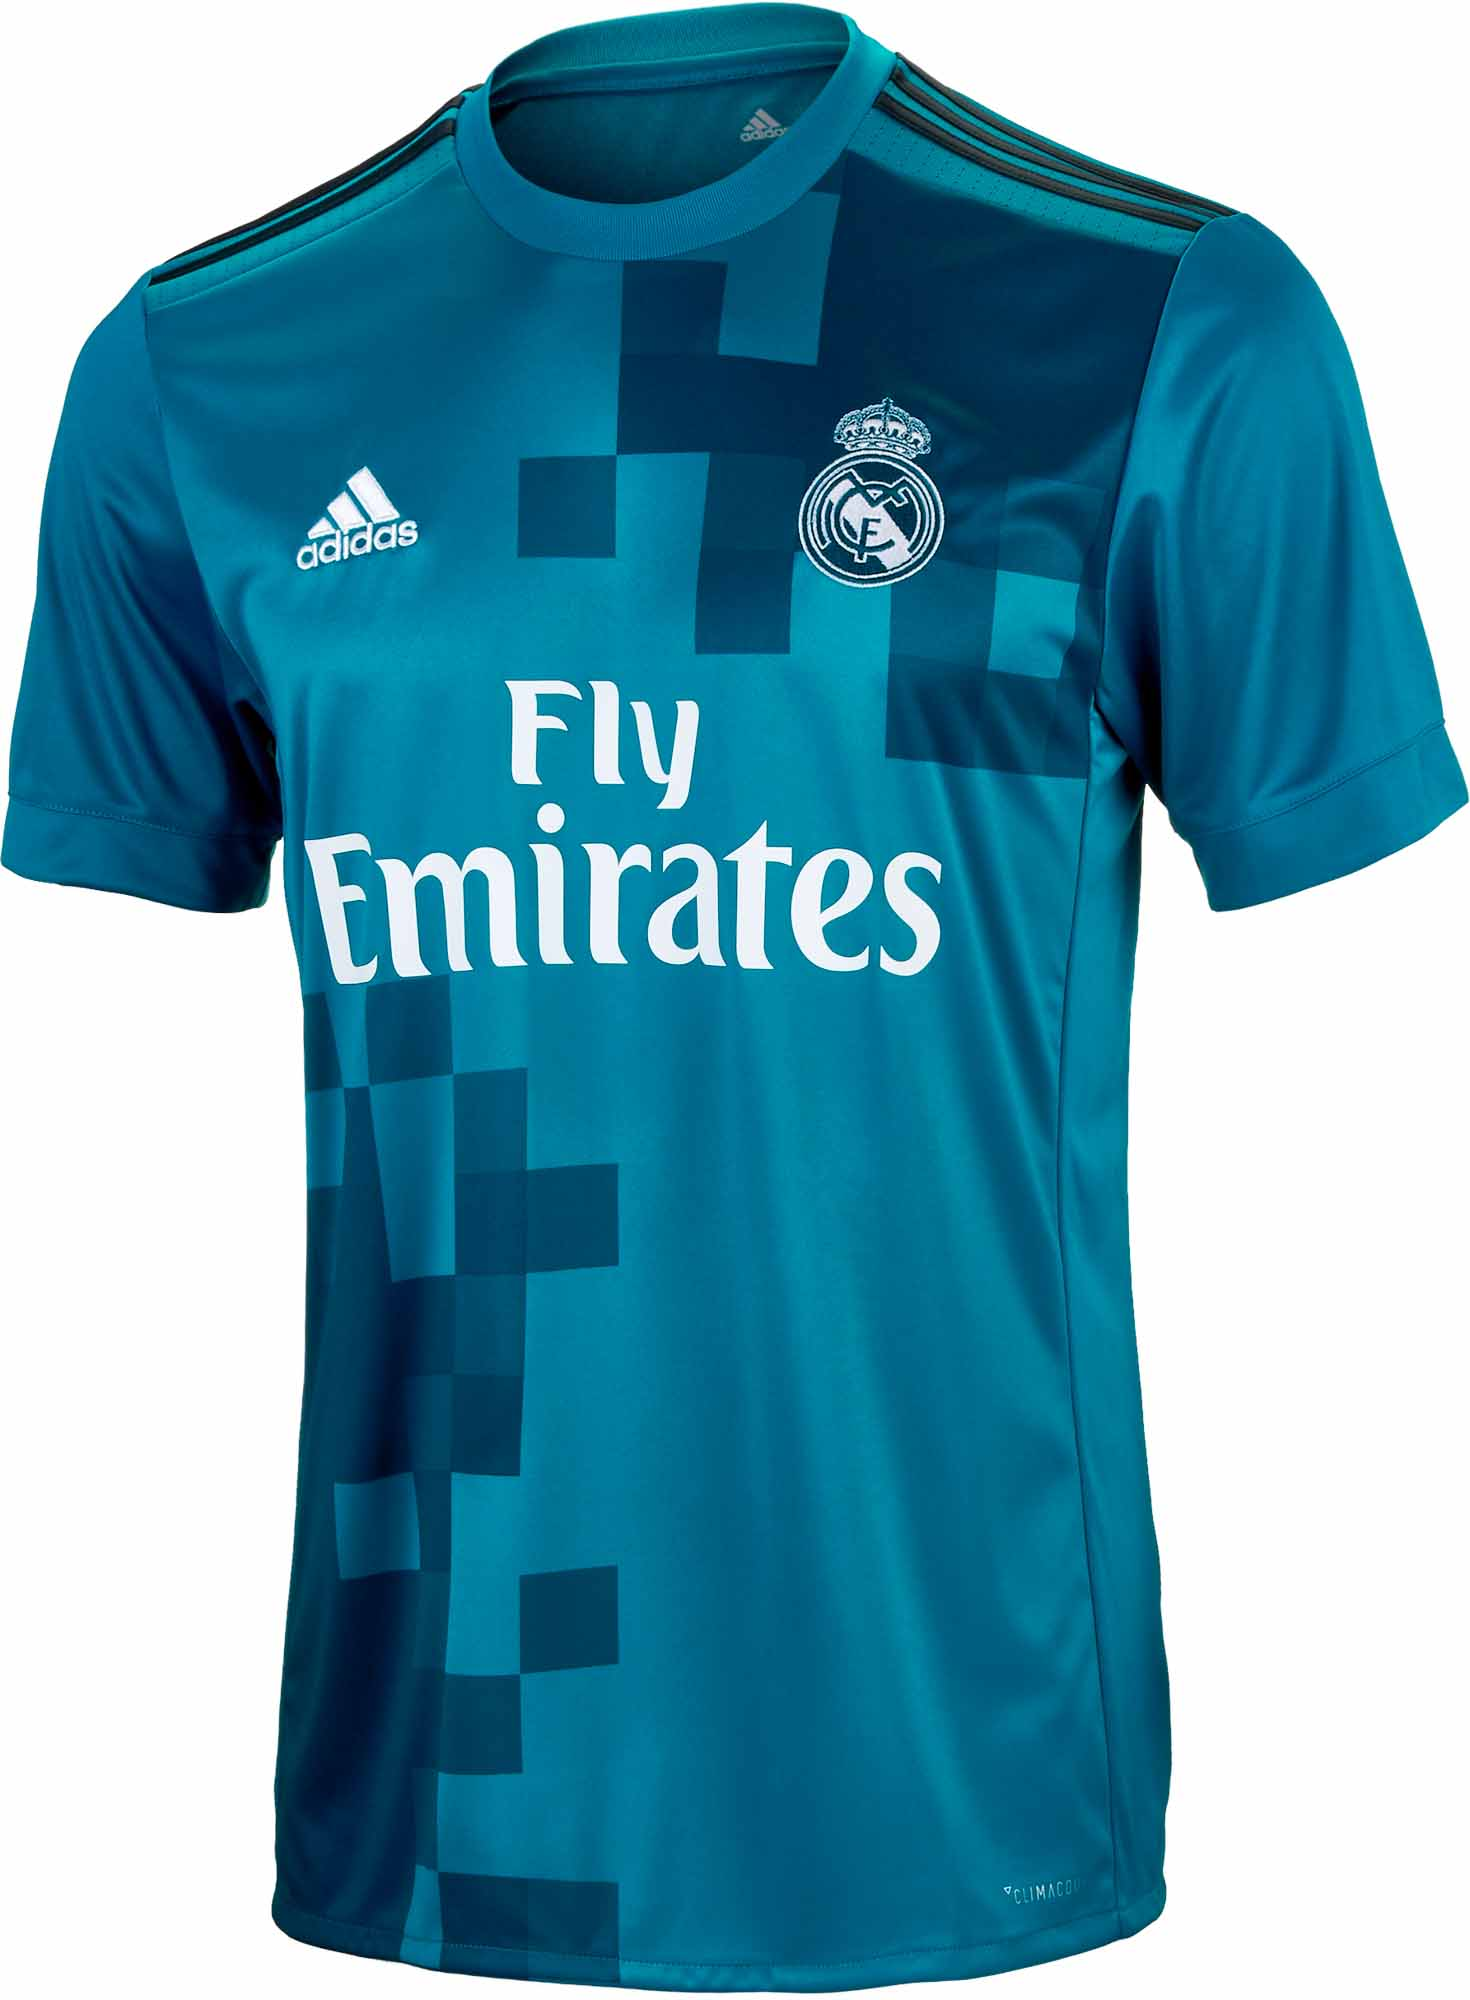 best sneakers 29a53 e1754 Kids 2017/18 adidas Real Madrid 3rd Jersey